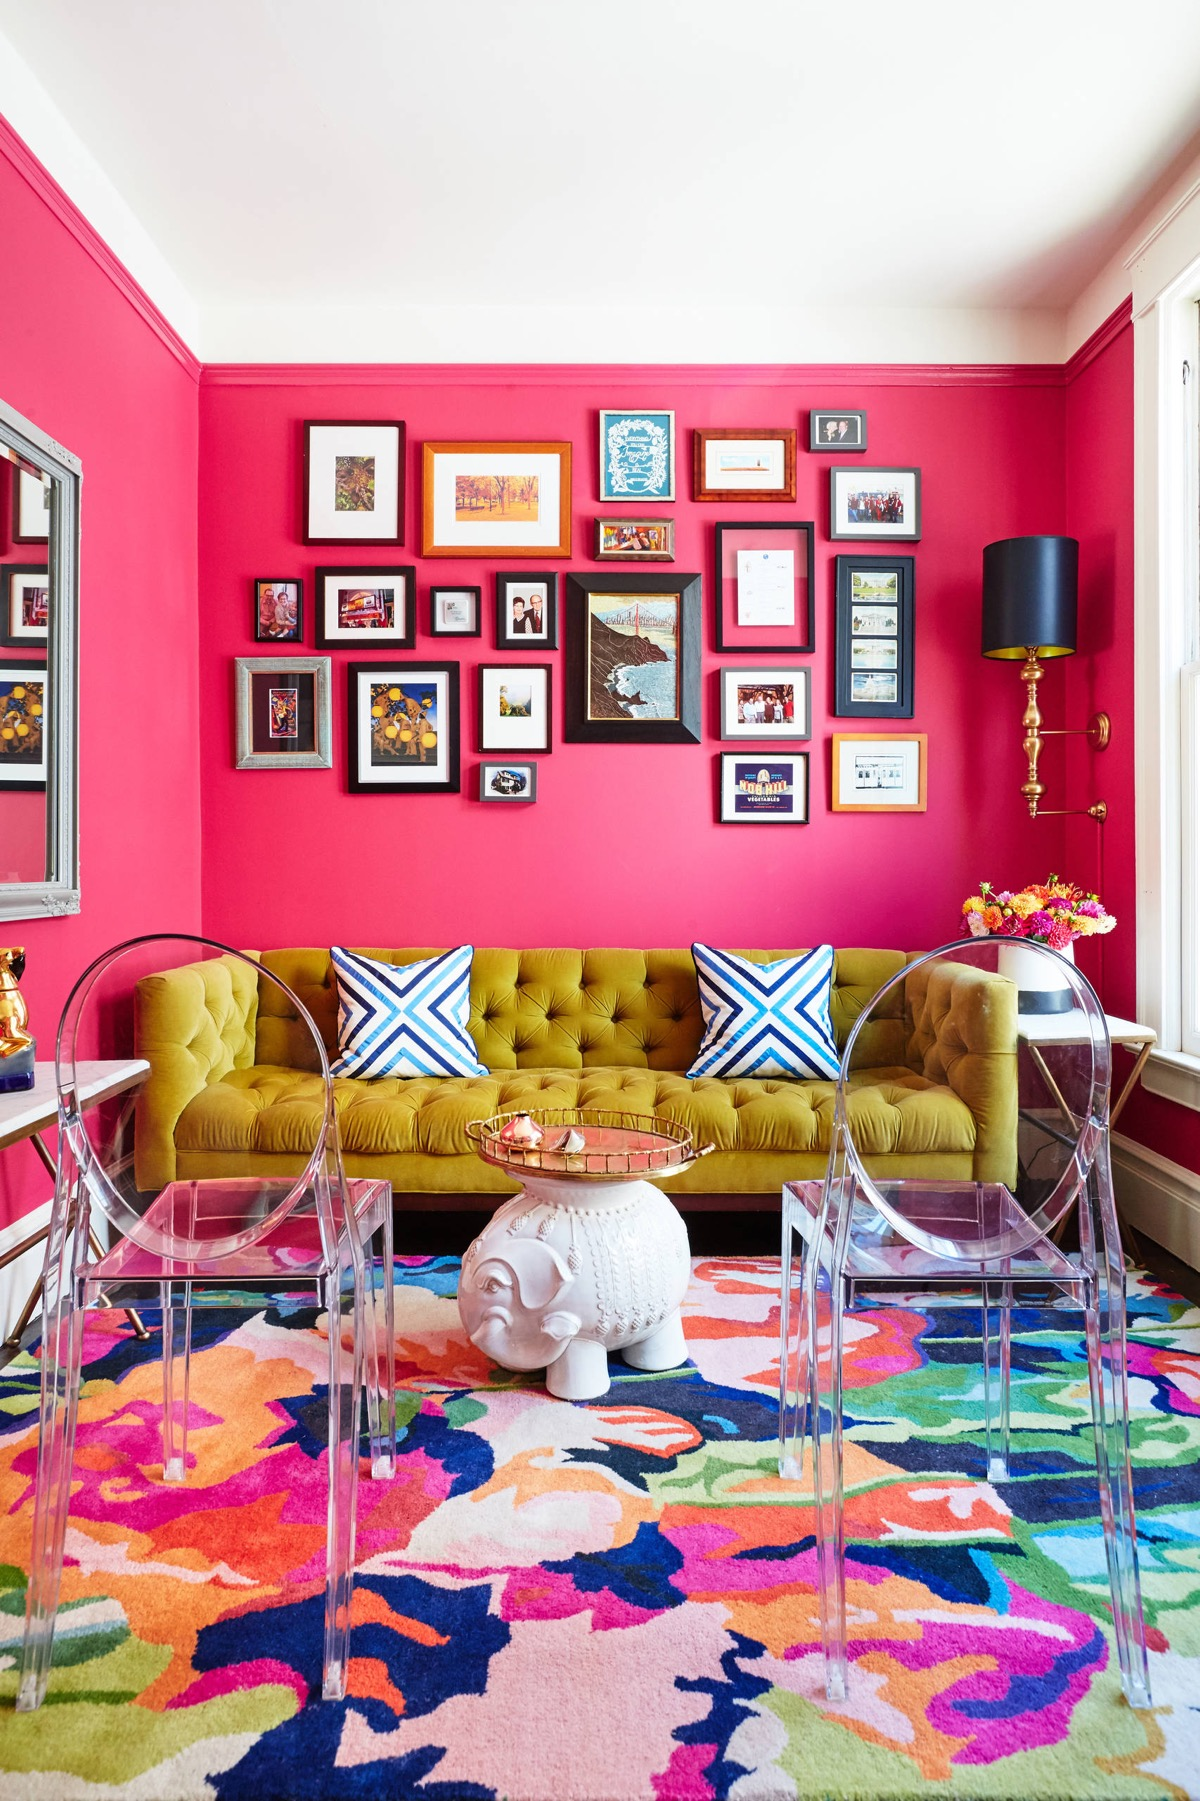 Pink Living Room Design: 51 Pink Living Rooms With Tips, Ideas And Accessories To